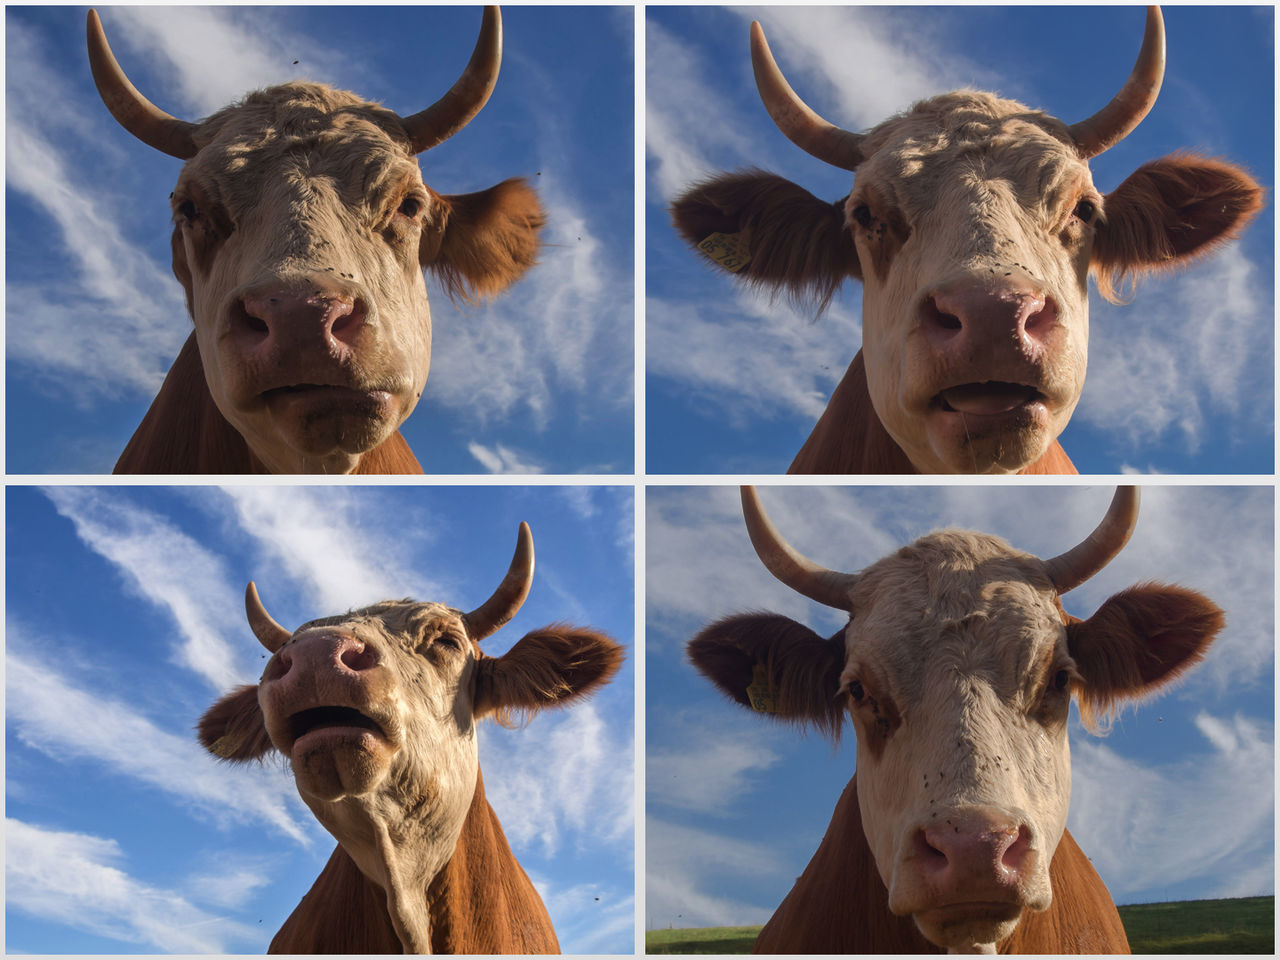 livestock, mammal, domestic animals, animal themes, horned, cattle, domestic cattle, cow, looking at camera, portrait, animal head, one animal, day, no people, outdoors, domesticated animal tag, nature, close-up, multiple image, sky